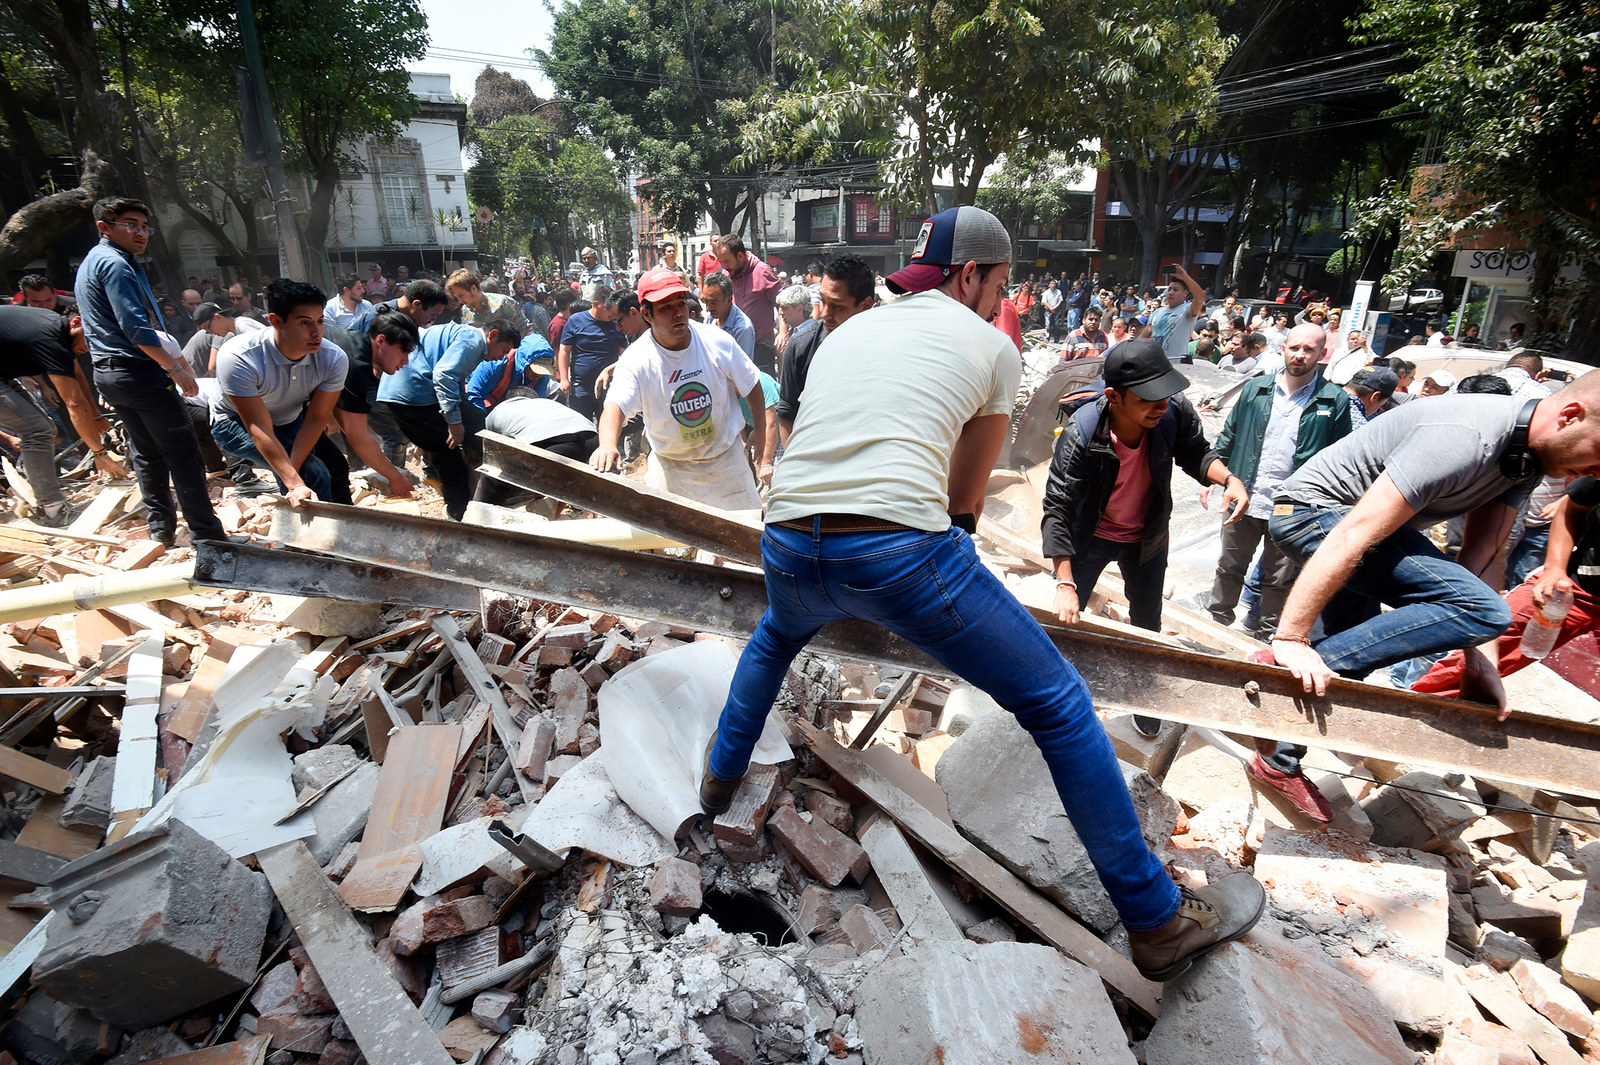 what occured in mexico Rescuers searched for survivors through the night after tuesday's powerful earthquake shook mexico city and surrounding states, killing scores and leaving many trapped under collapsed buildings.